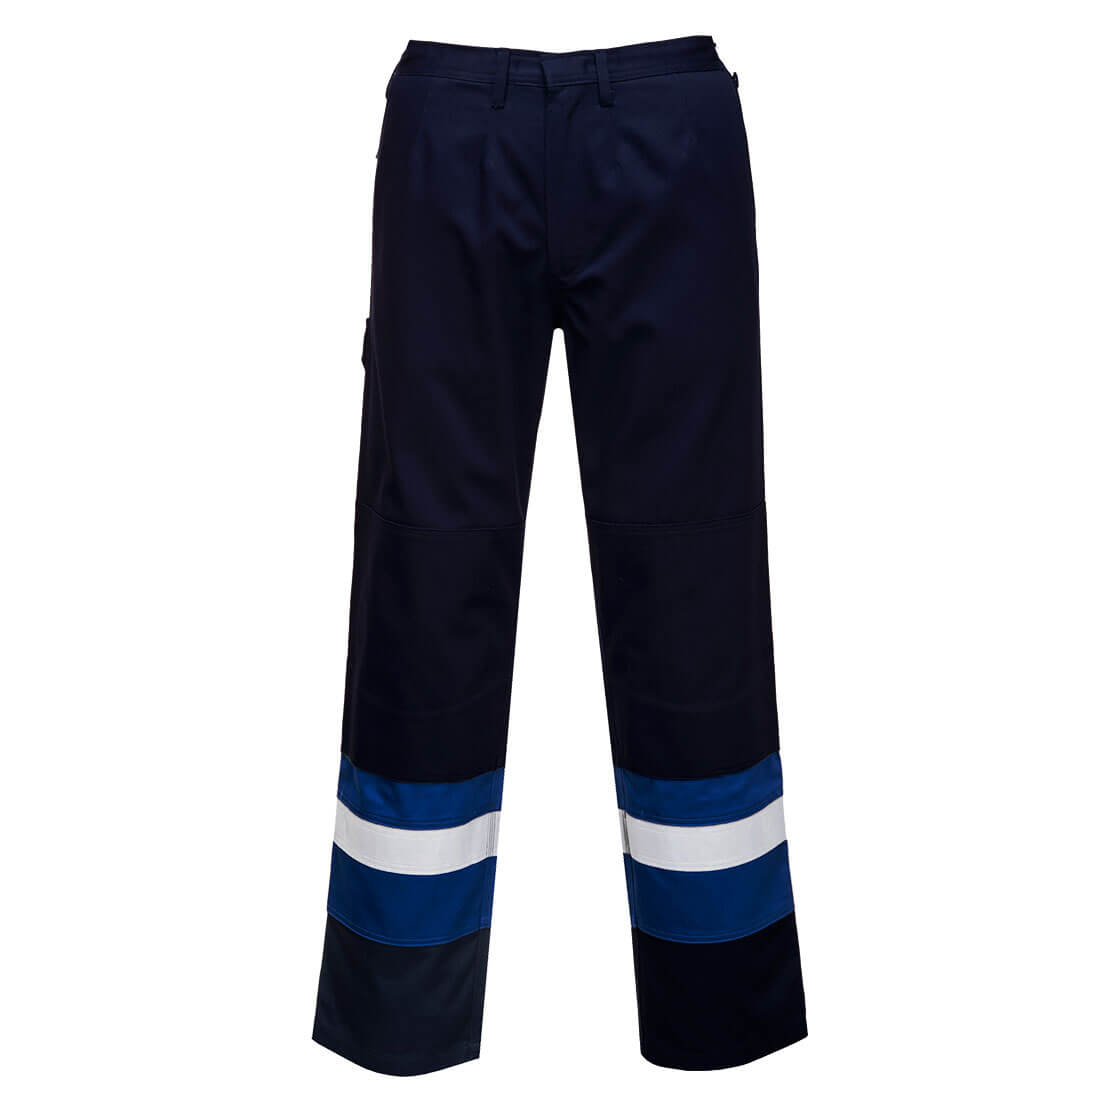 Image of Biz Flame Mens Flame Resistant Plus Trousers Navy / Royal 2XL 32""